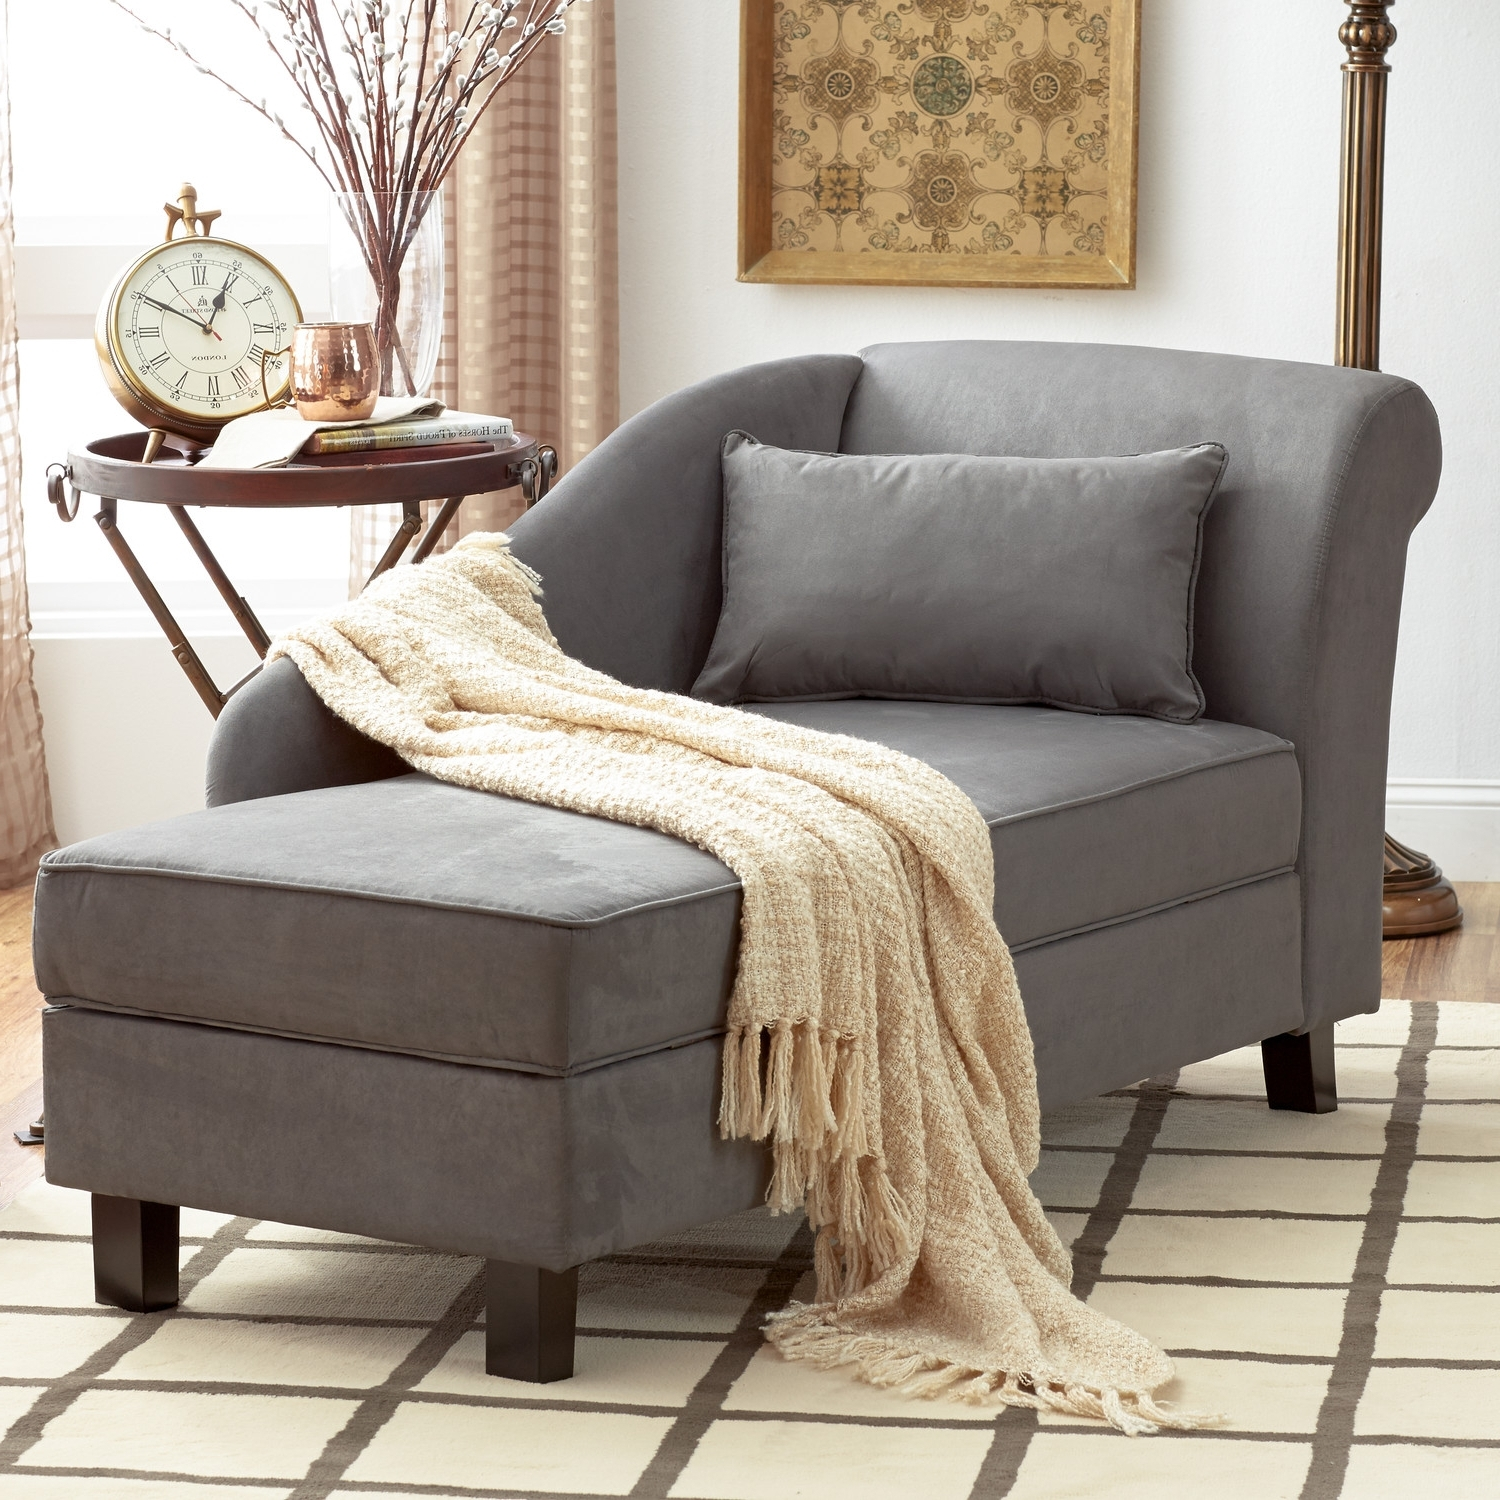 Modern Lounge Chair For Bedroom • Lounge Chairs Ideas With Regard To Preferred Bedroom Chaise Lounge Chairs (View 15 of 15)